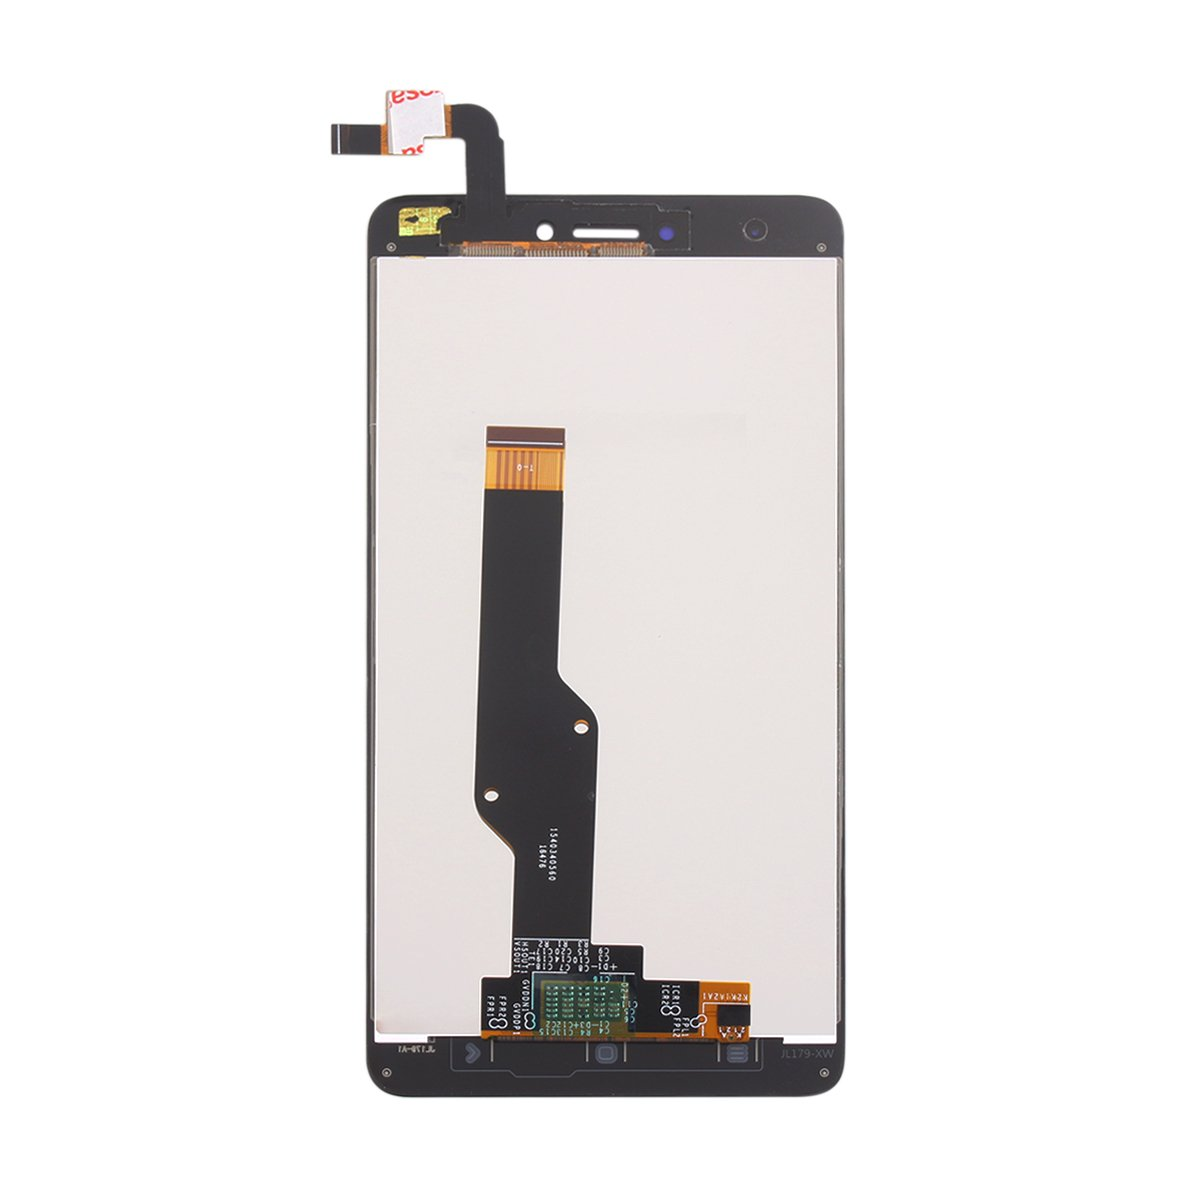 Hyyt Xiaomi Redmi Note 4international Version Touchscreen 4x Lcd Display Touch Screen Digitizer Assemblycpu Is Snapdragon 625 Cell Phones